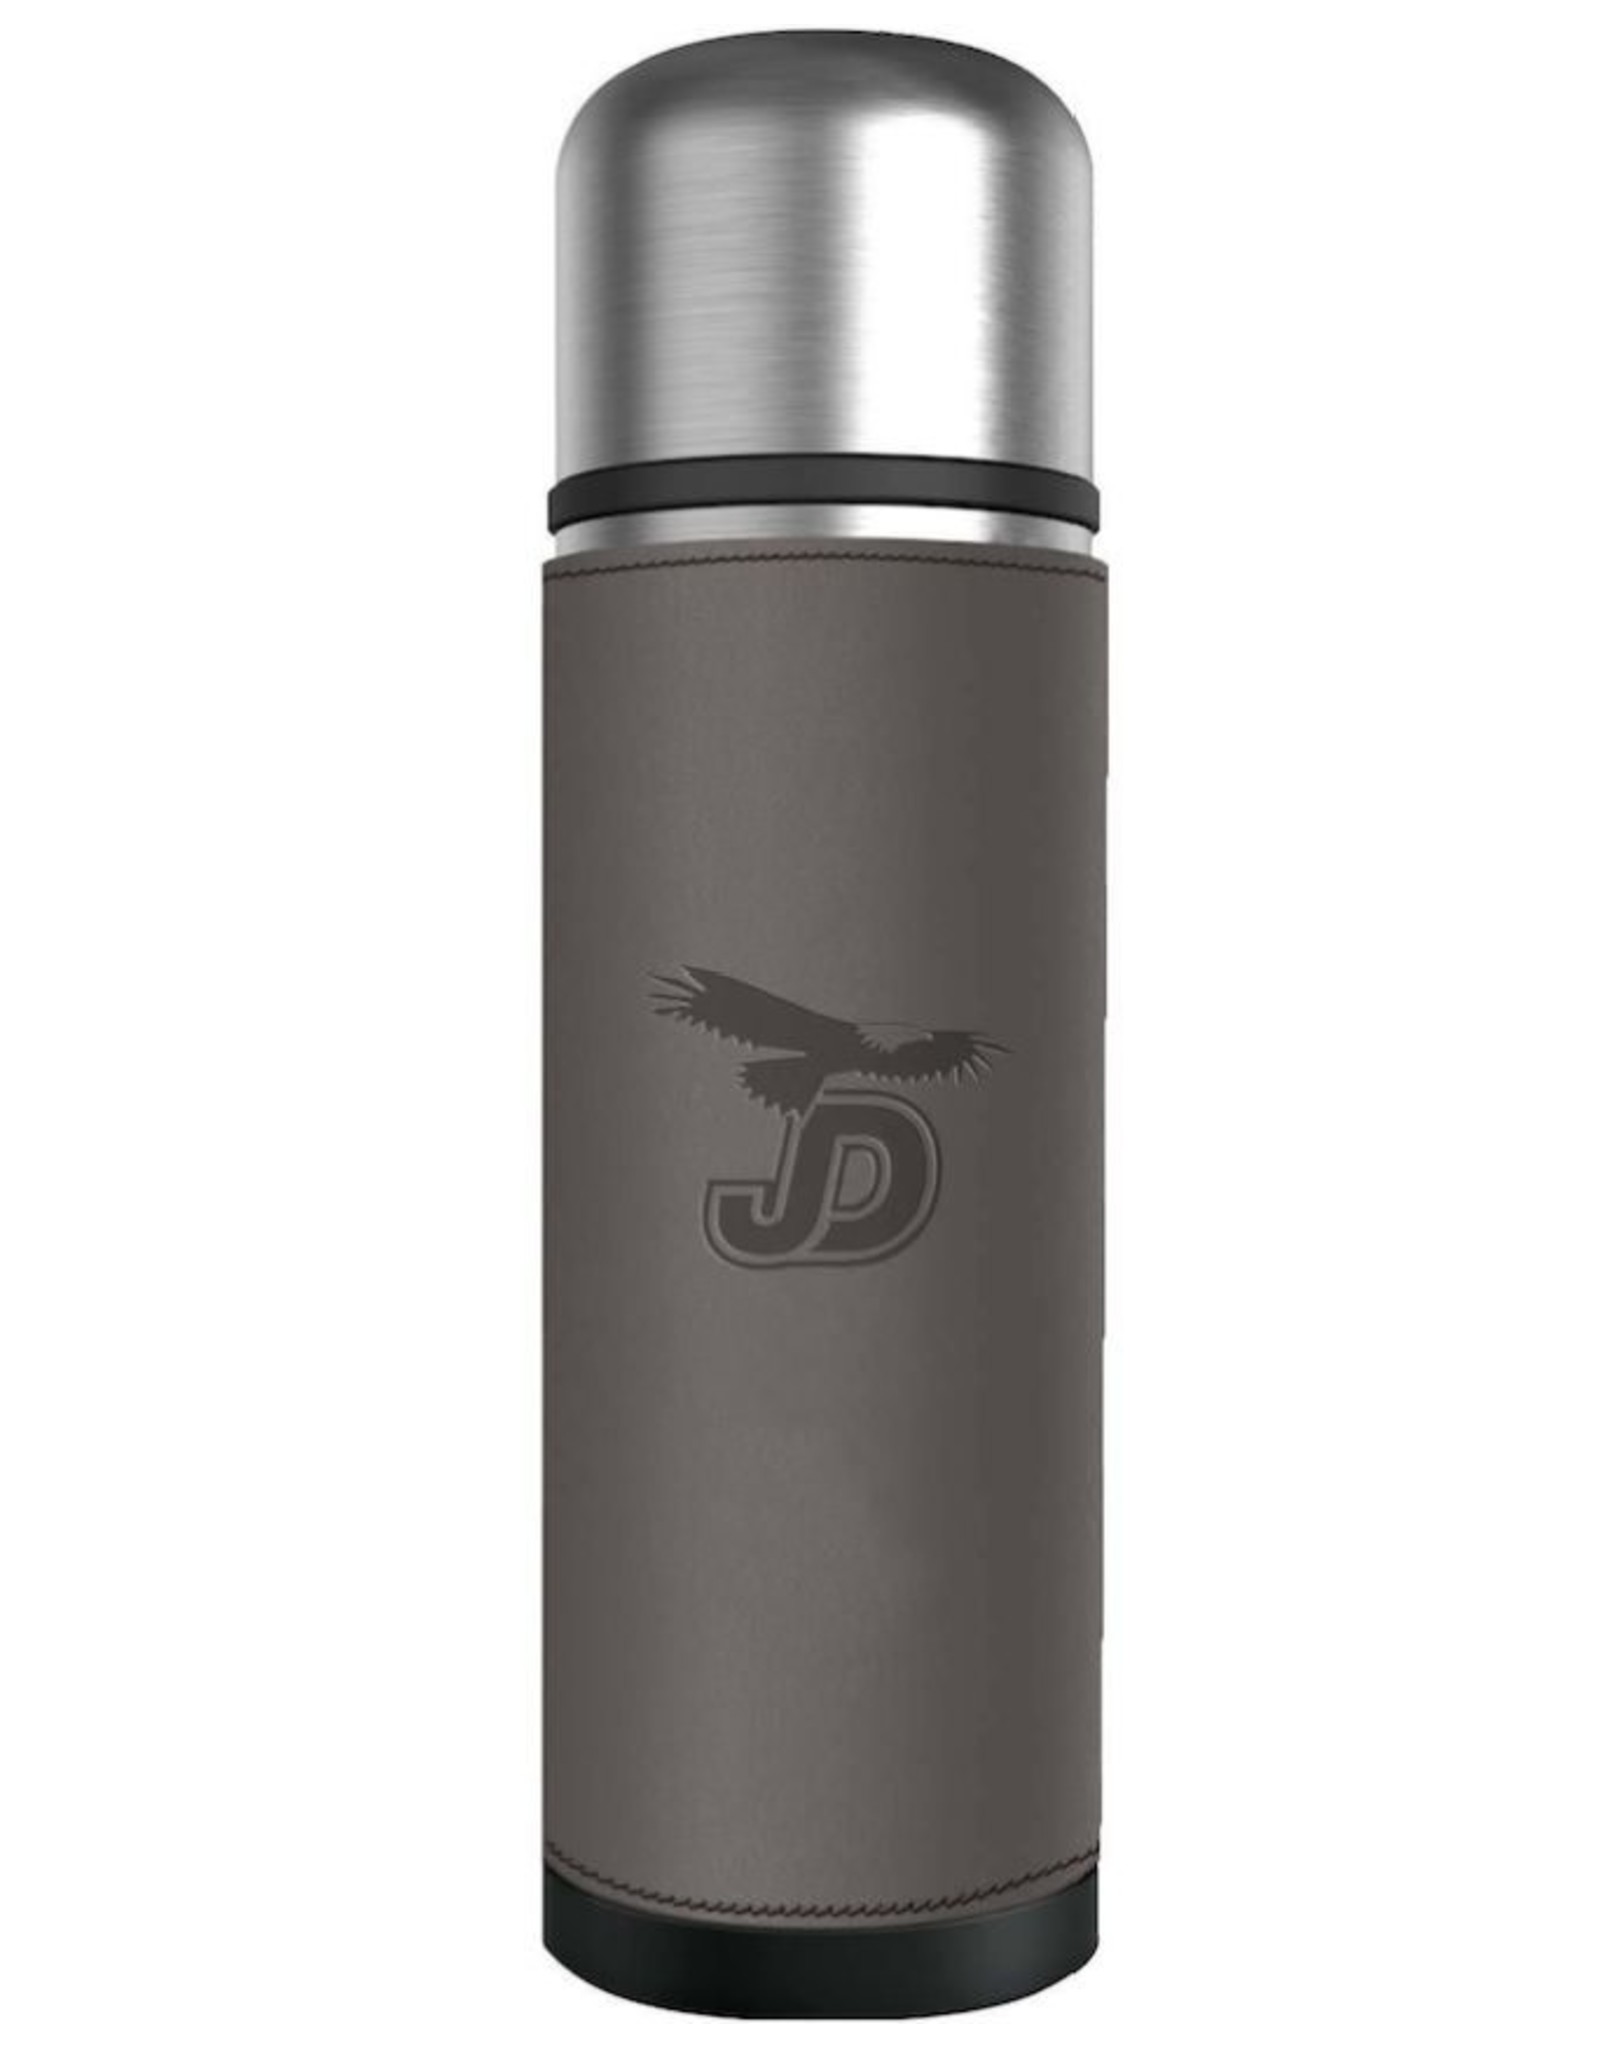 NON-UNIFORM JD Insulated Thermos 17oz. Bottle, Gray